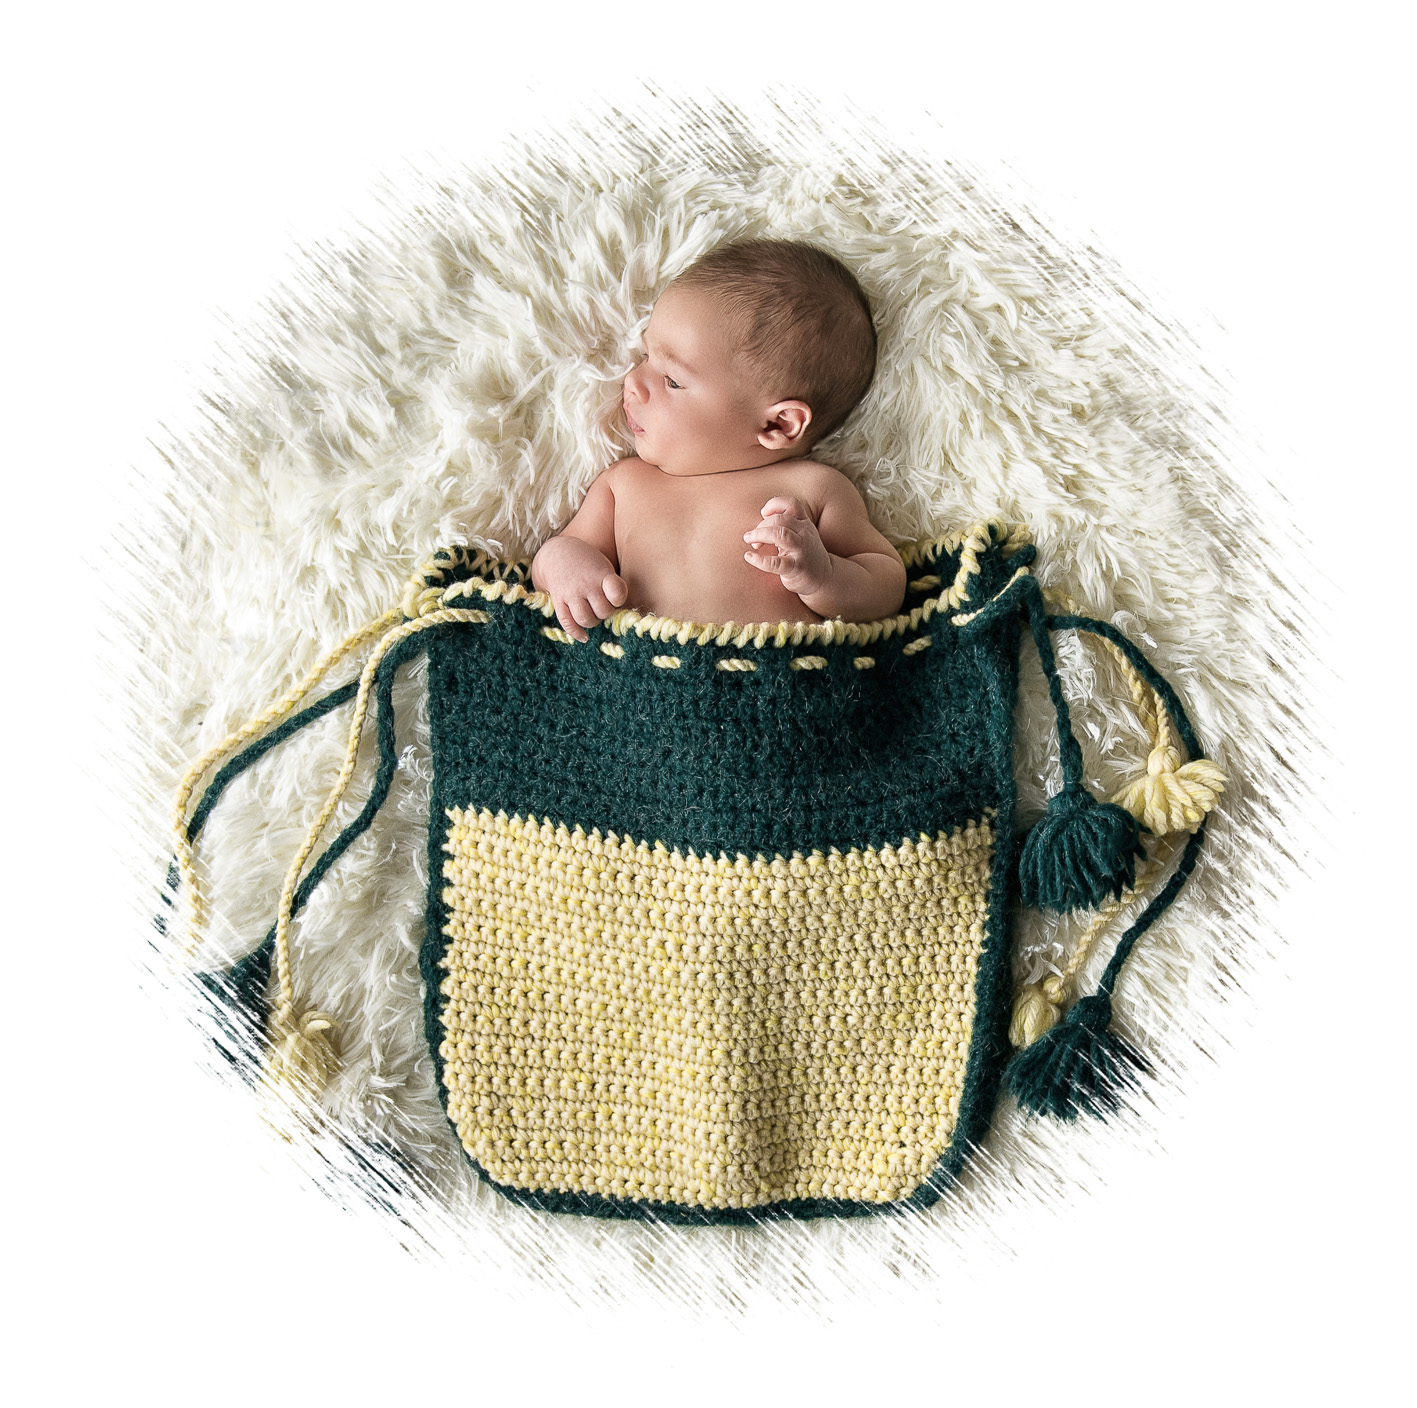 newborn-photo-tagg-photography-7